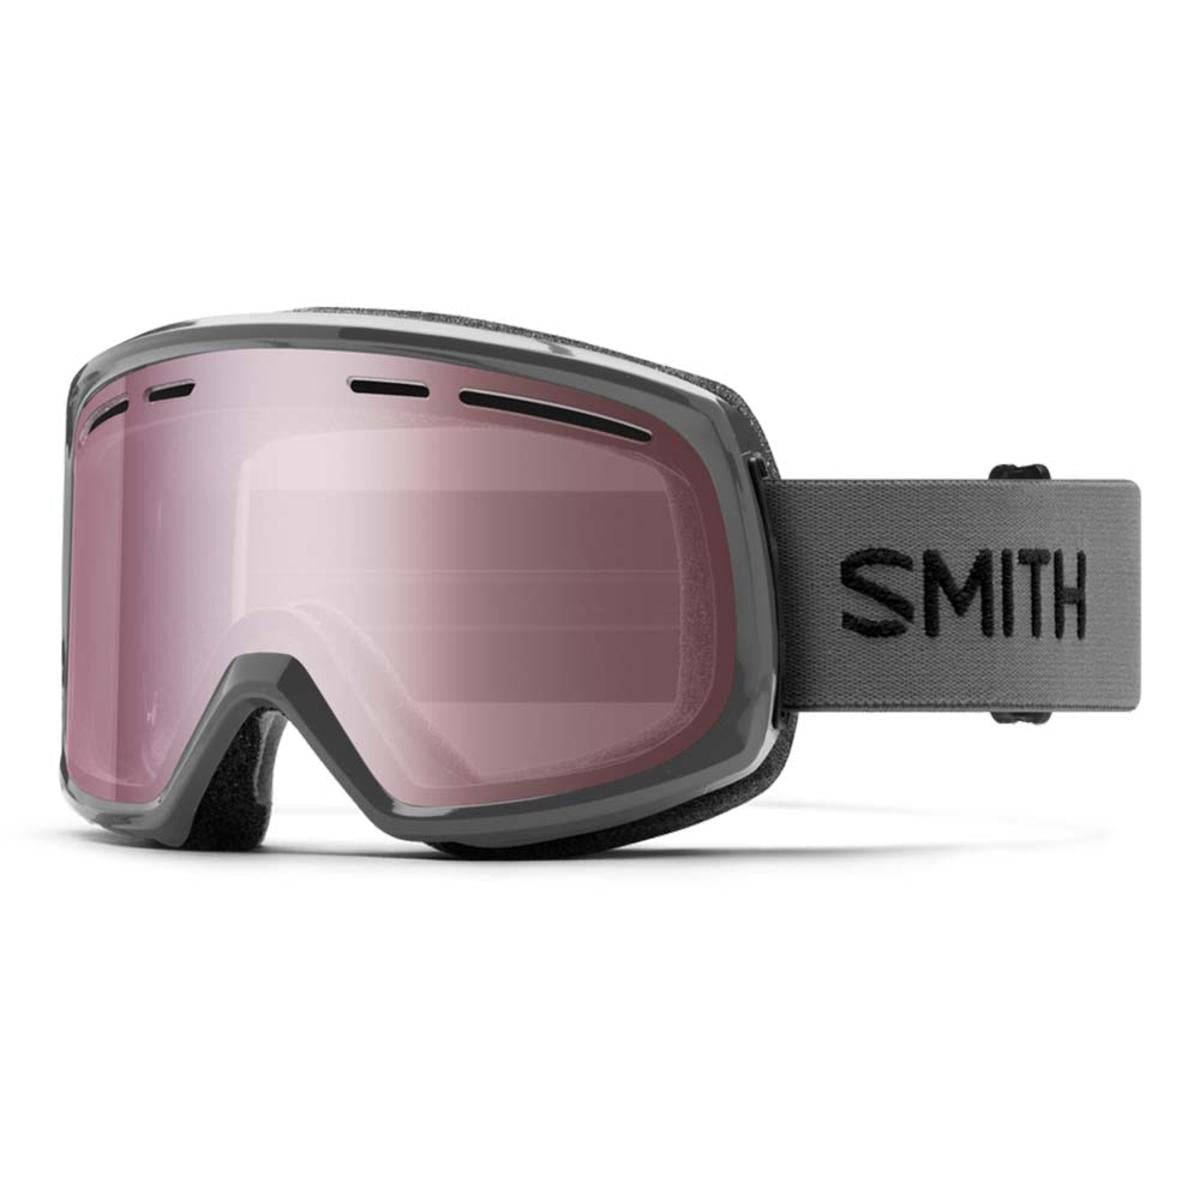 Smith Optics Range Goggles Ignitor Mirror - Charcoal Frame